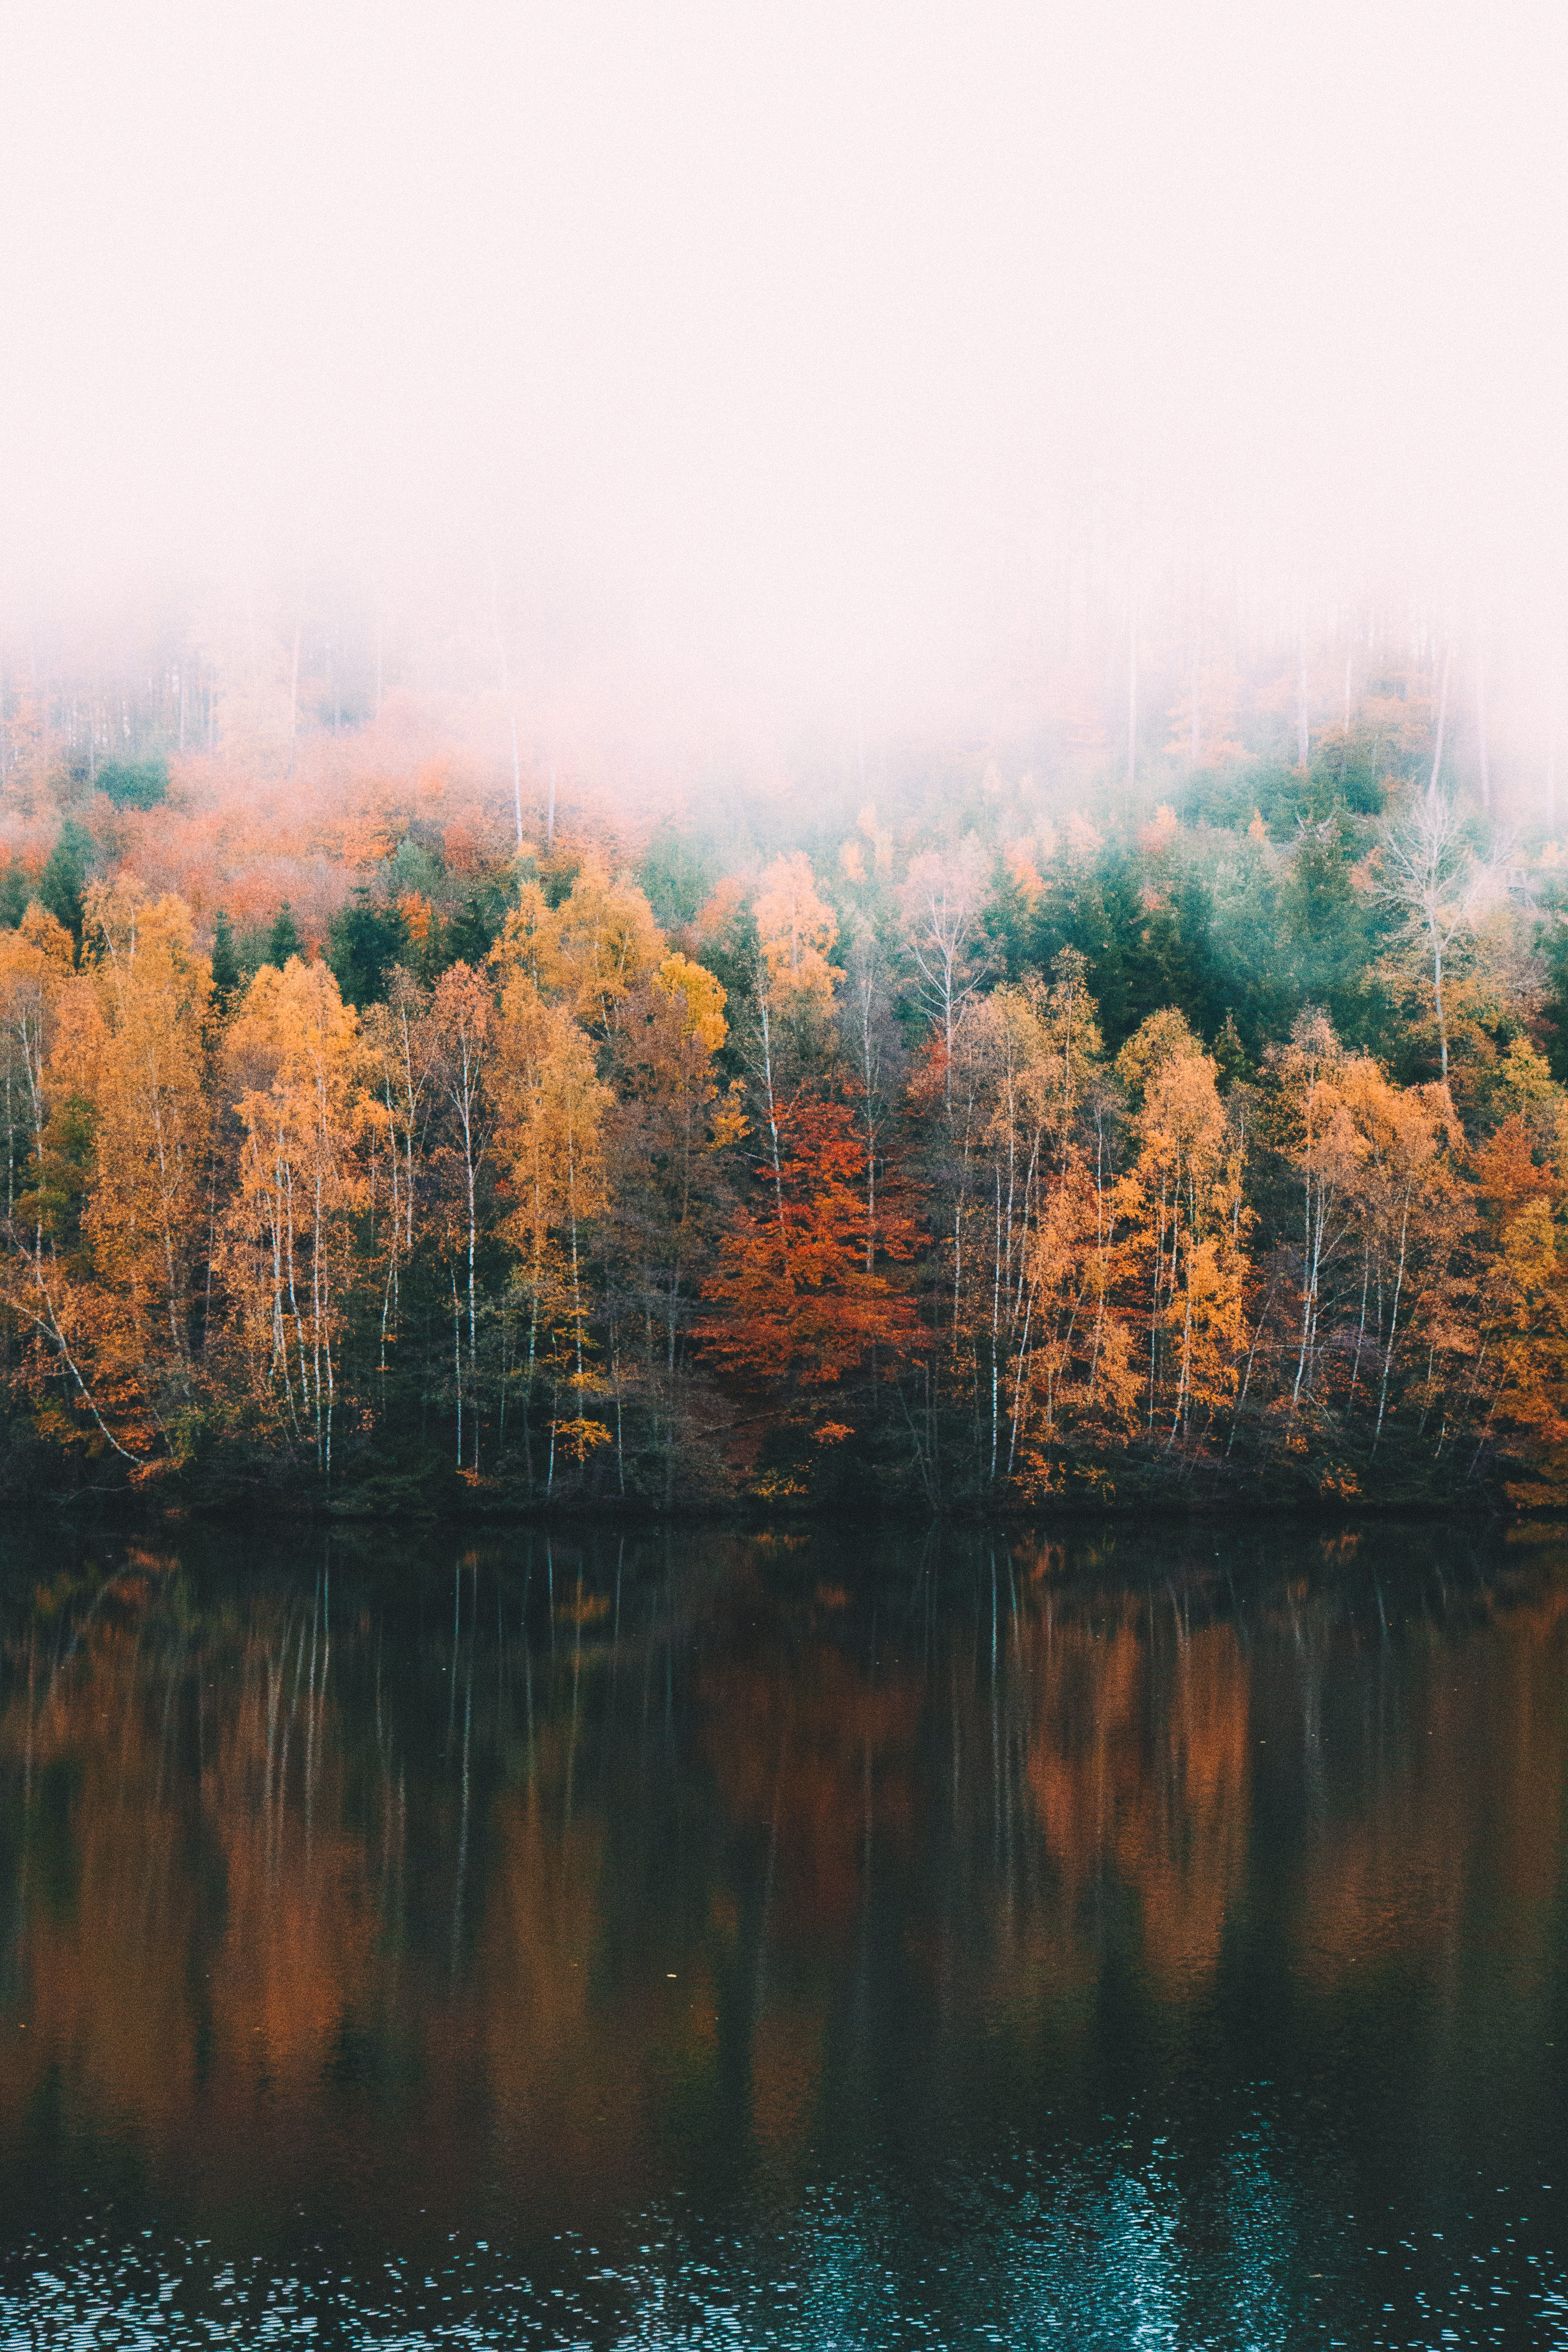 yellow and green trees beside calm body of water